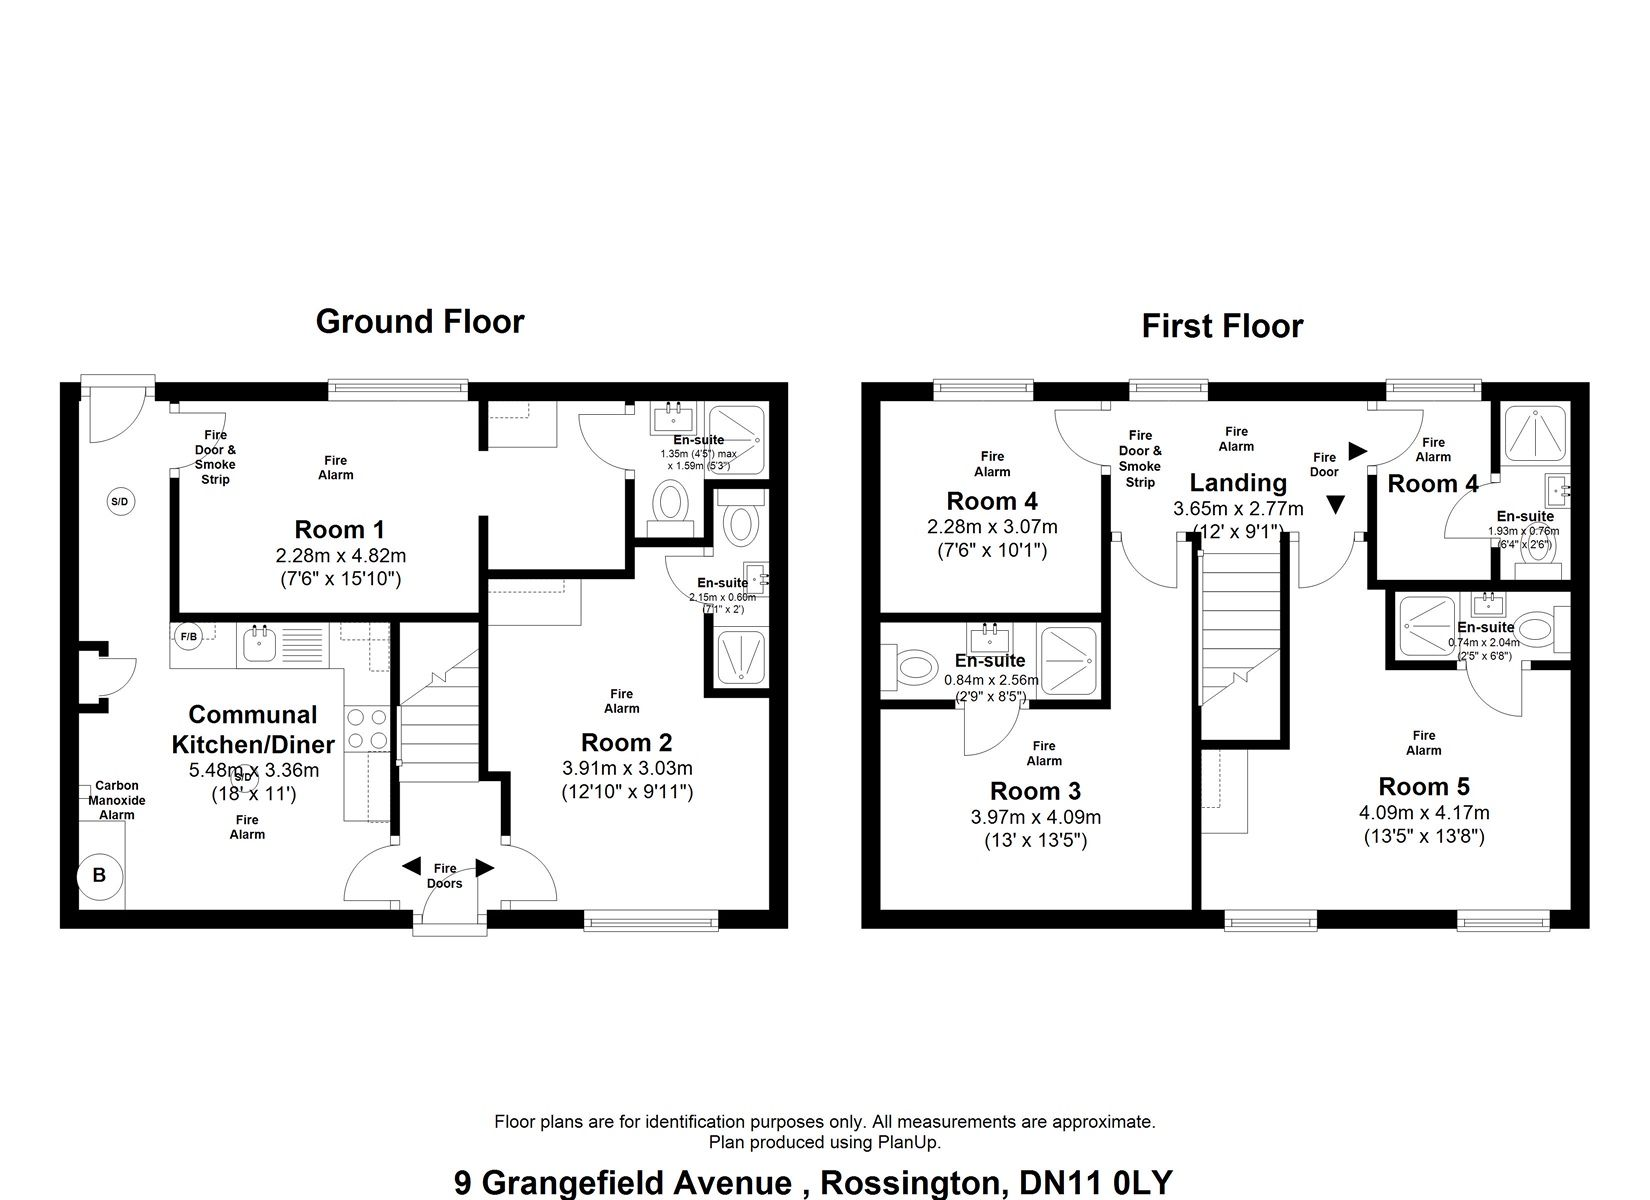 To Let - 1 bedroom Double room, Grangefield Avenue, Room Two, New Rossington, Doncaster - £90 pw